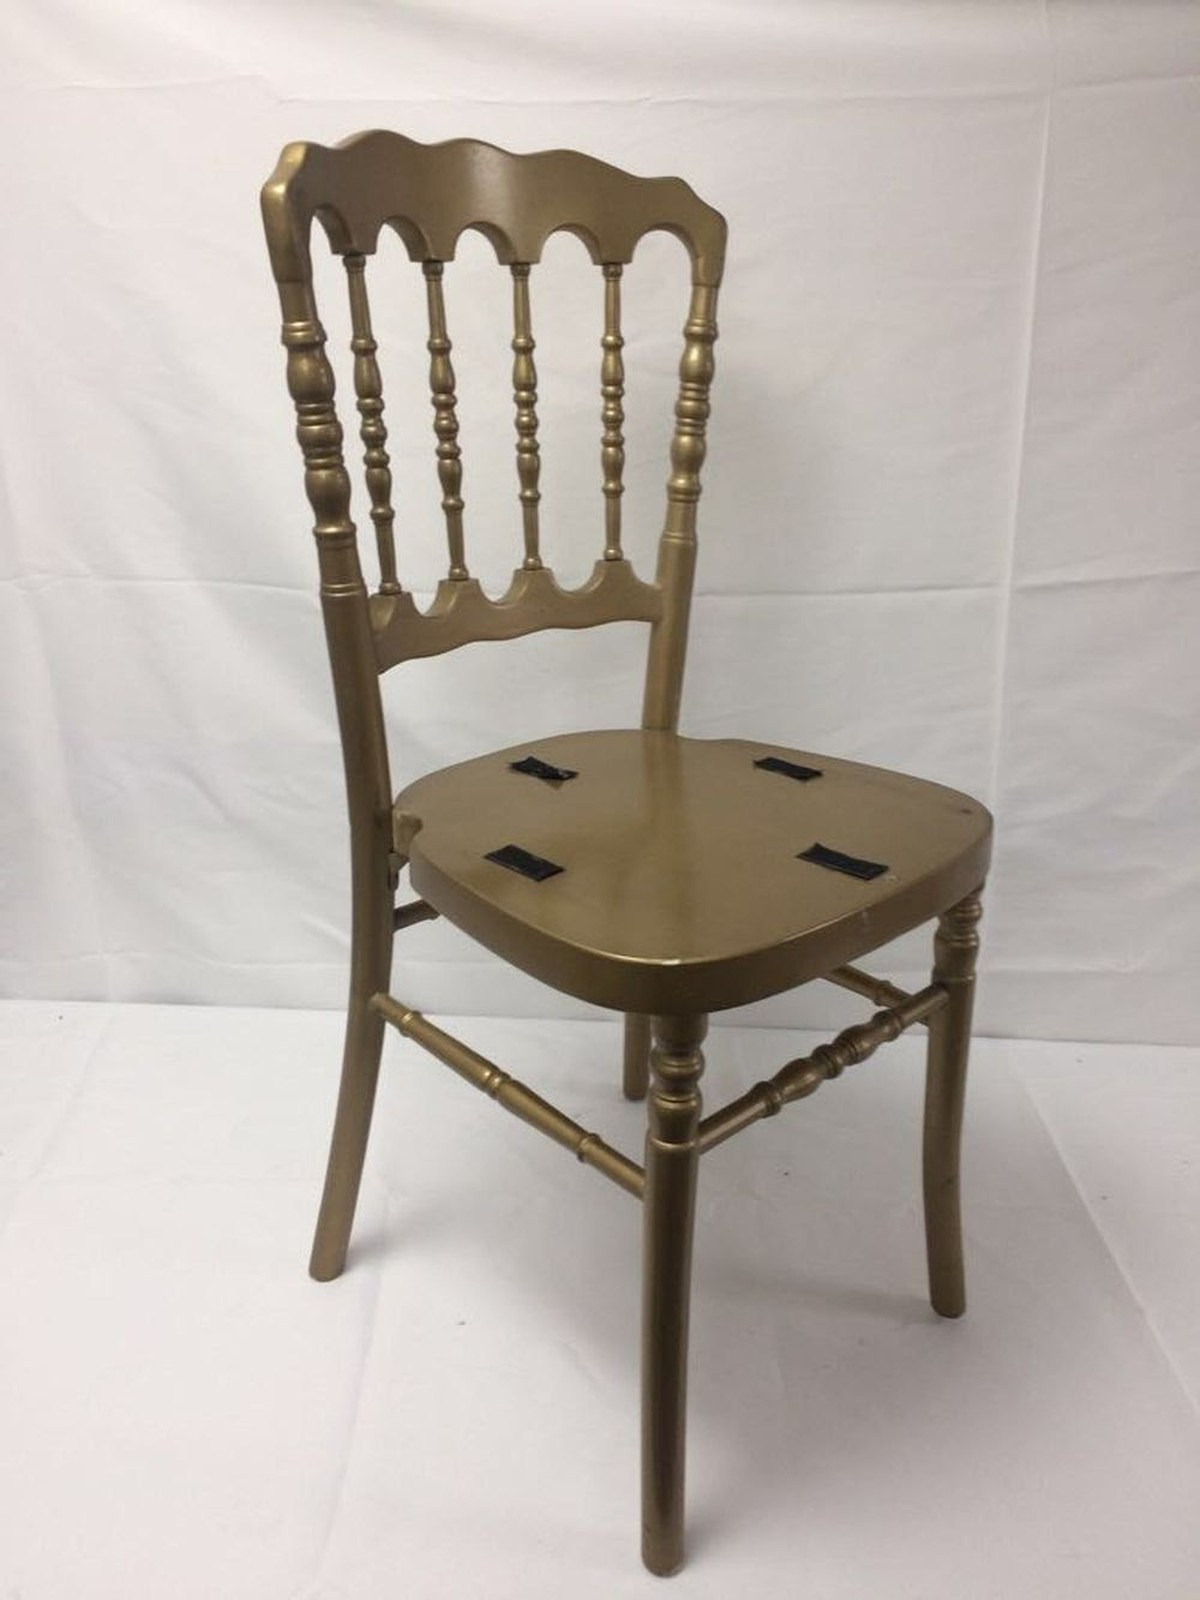 wood banquet chairs. Gold Wooden Banqueting Chairs Wood Banquet K